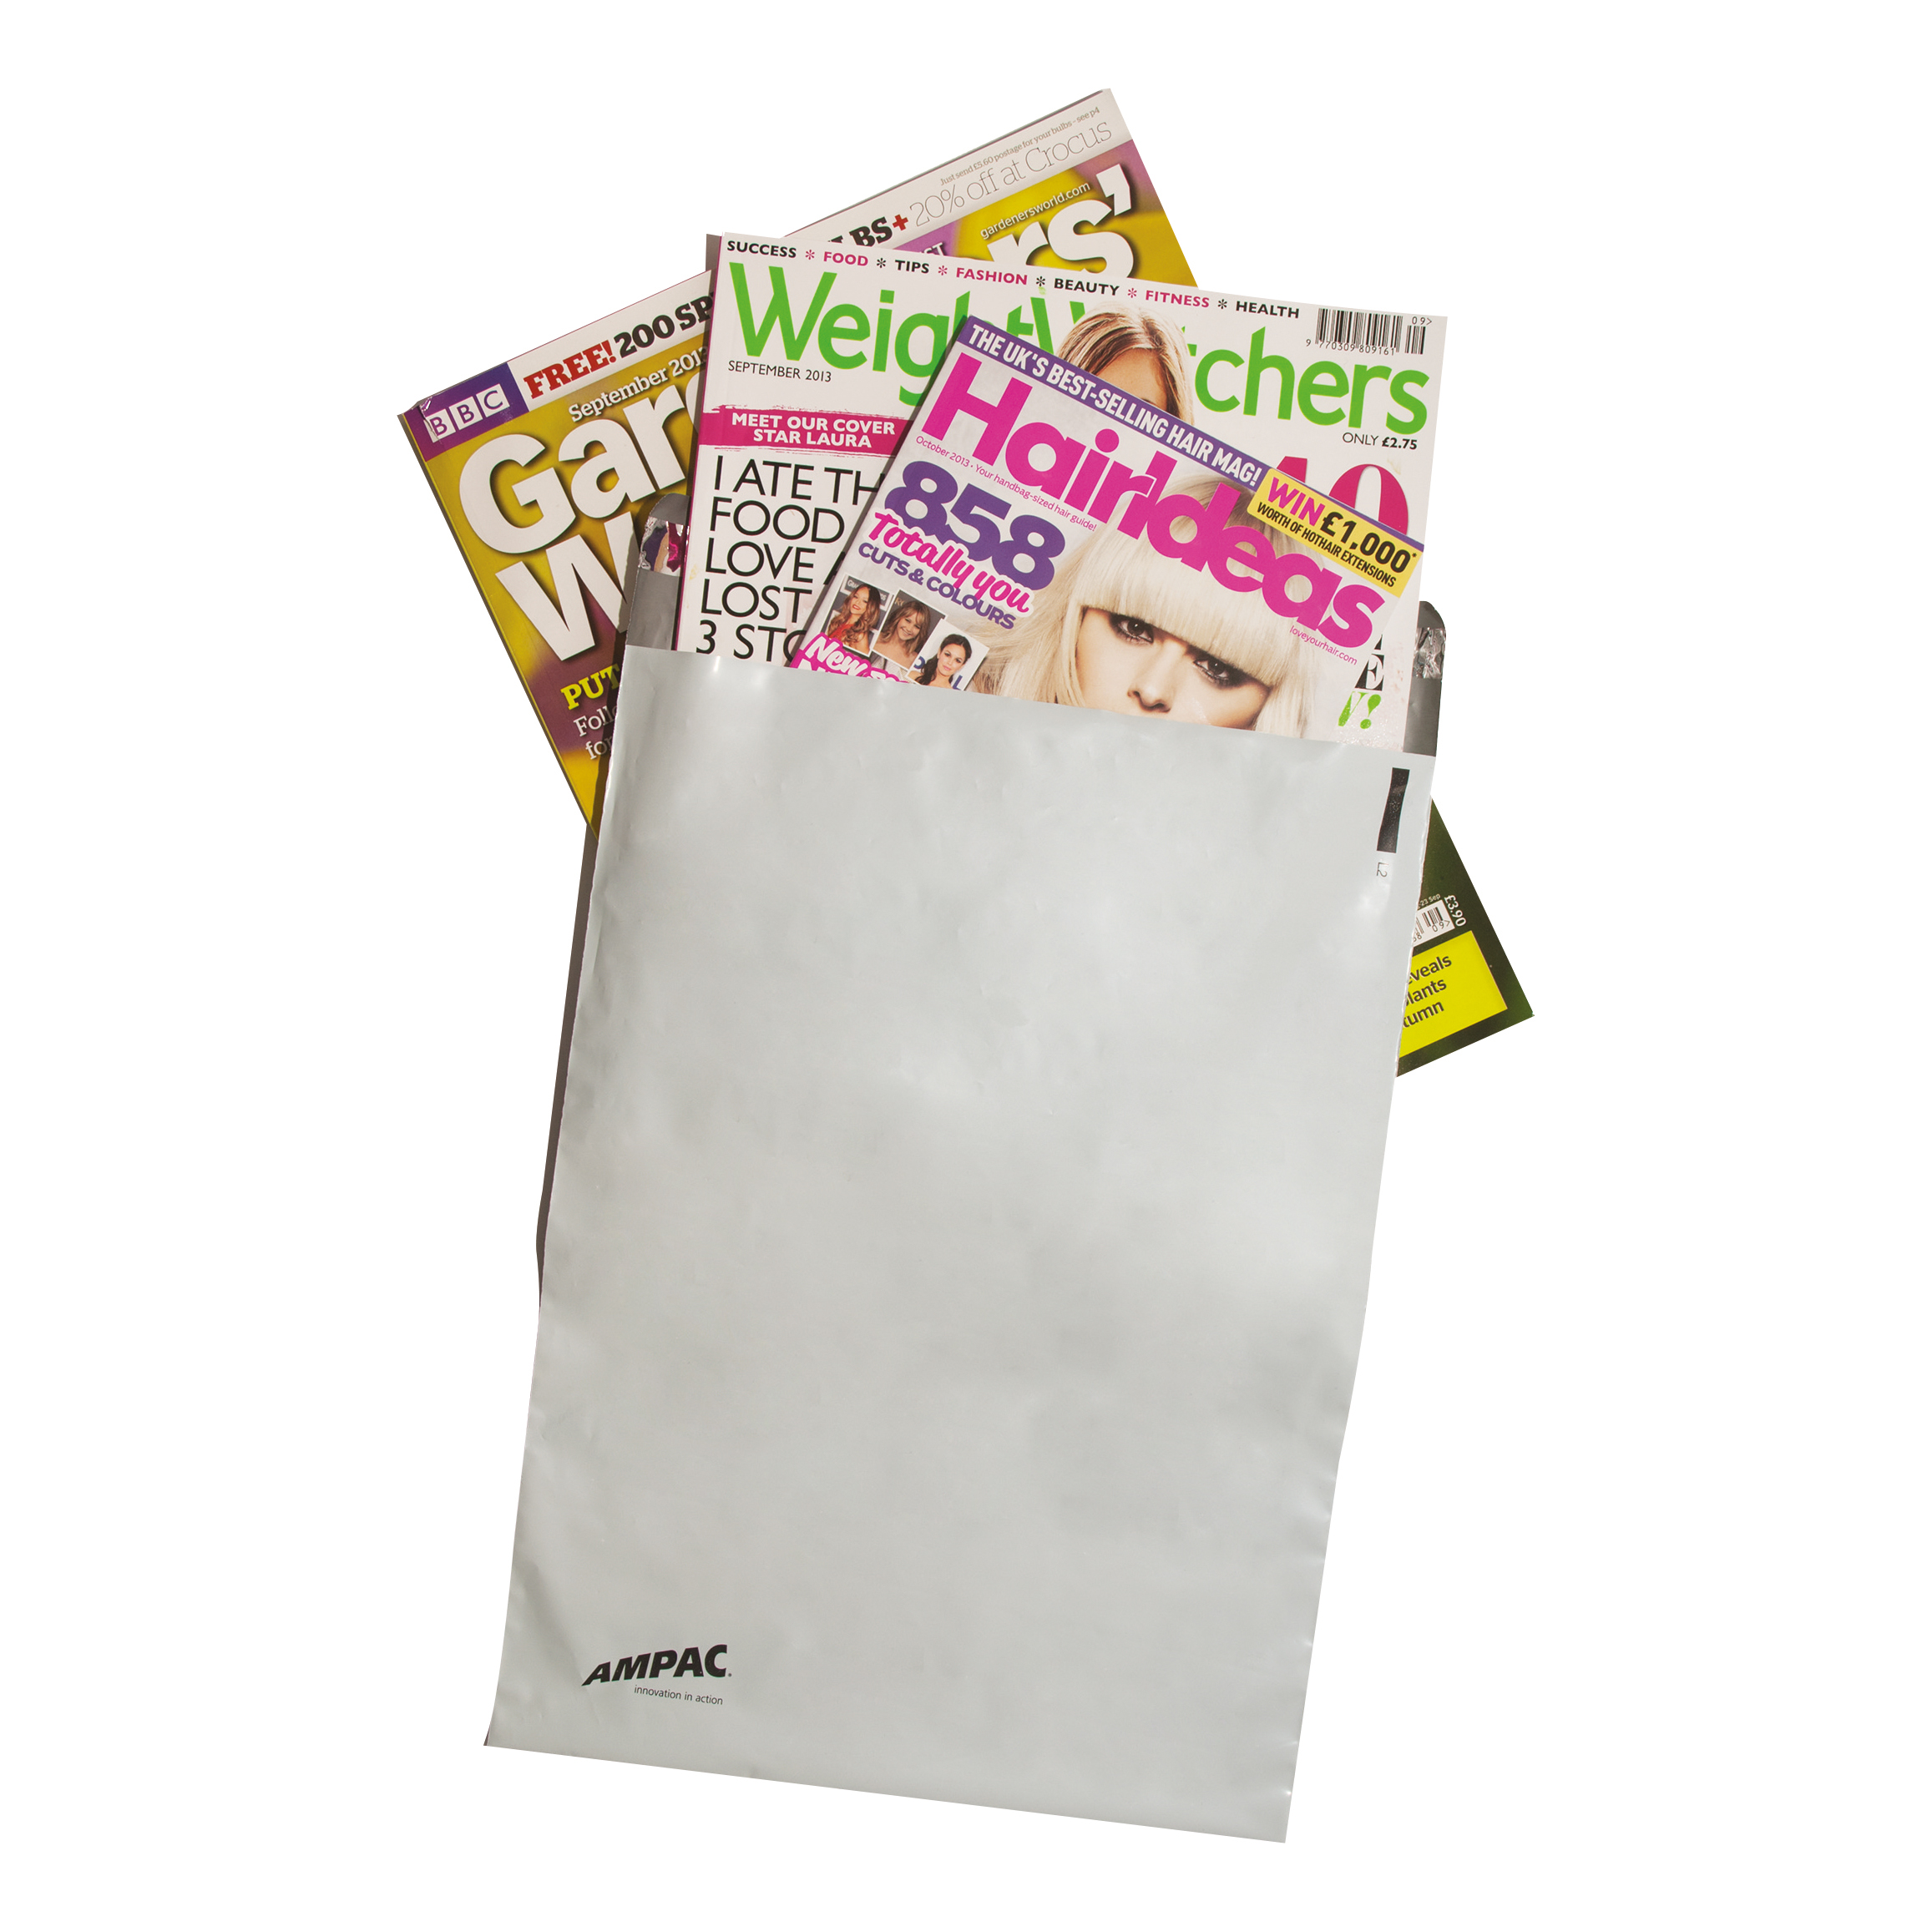 Keepsafe LightWeight Envelope Polythene Opaque C5 W162xH230mm Peel & Seal Ref KSV-L1 [Pack 100]